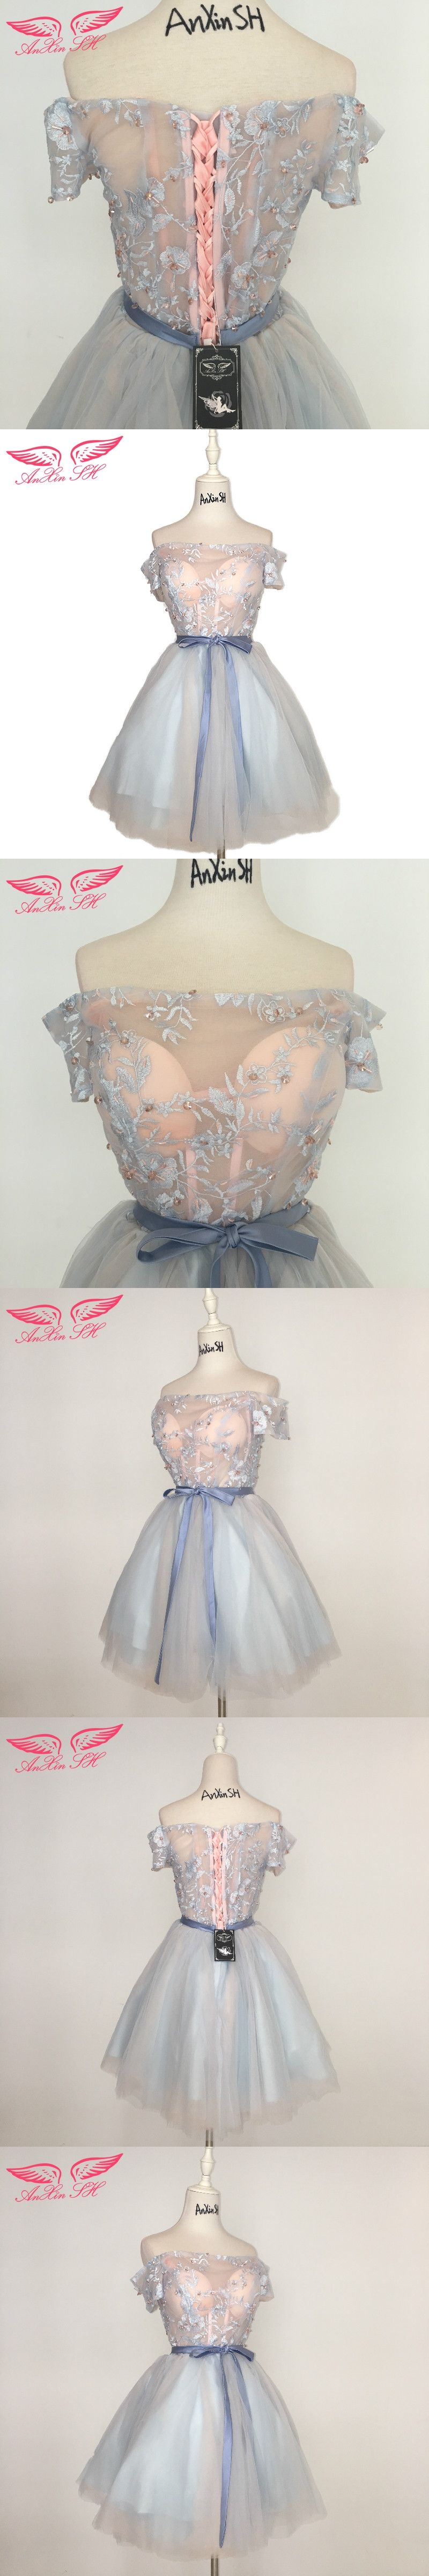 Anxin sh blue and pink lace bow evening dress beading flower short